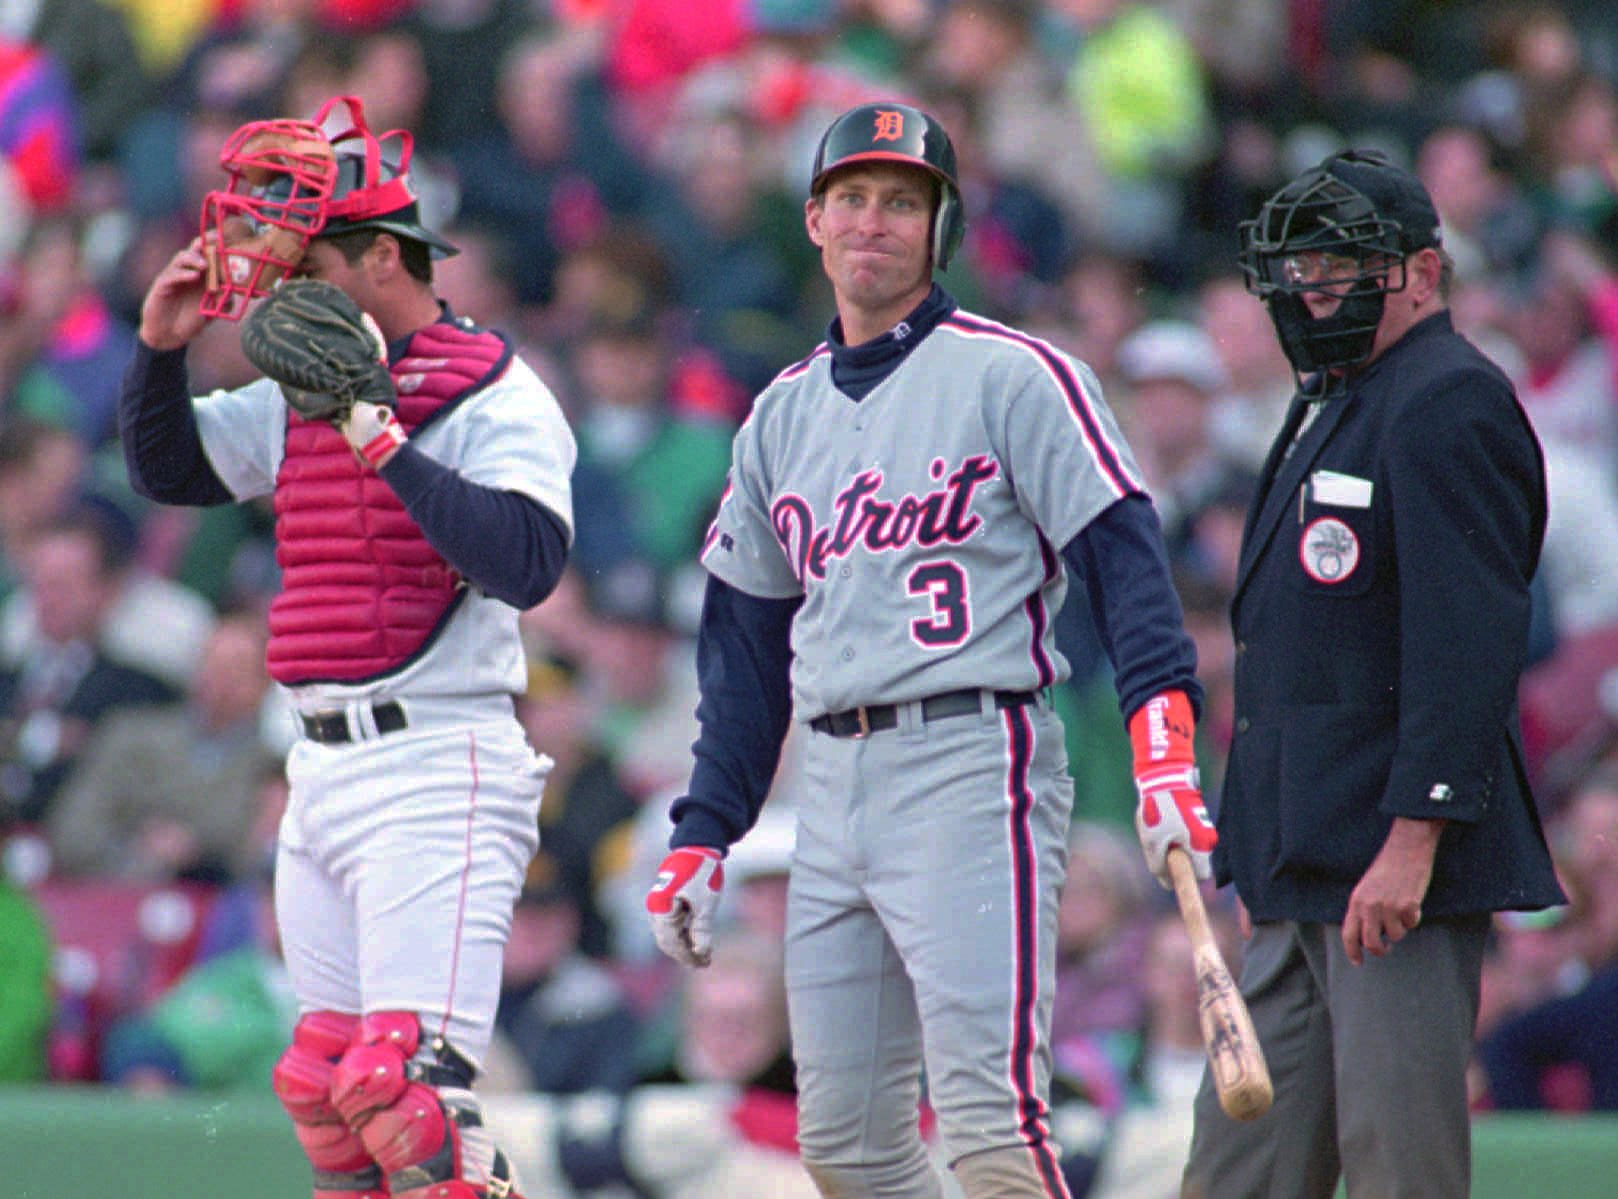 Detroit's Alan Trammell looks away in disgust after missing on a pitch in the top of the 9th down 9-8 to the Red Sox.